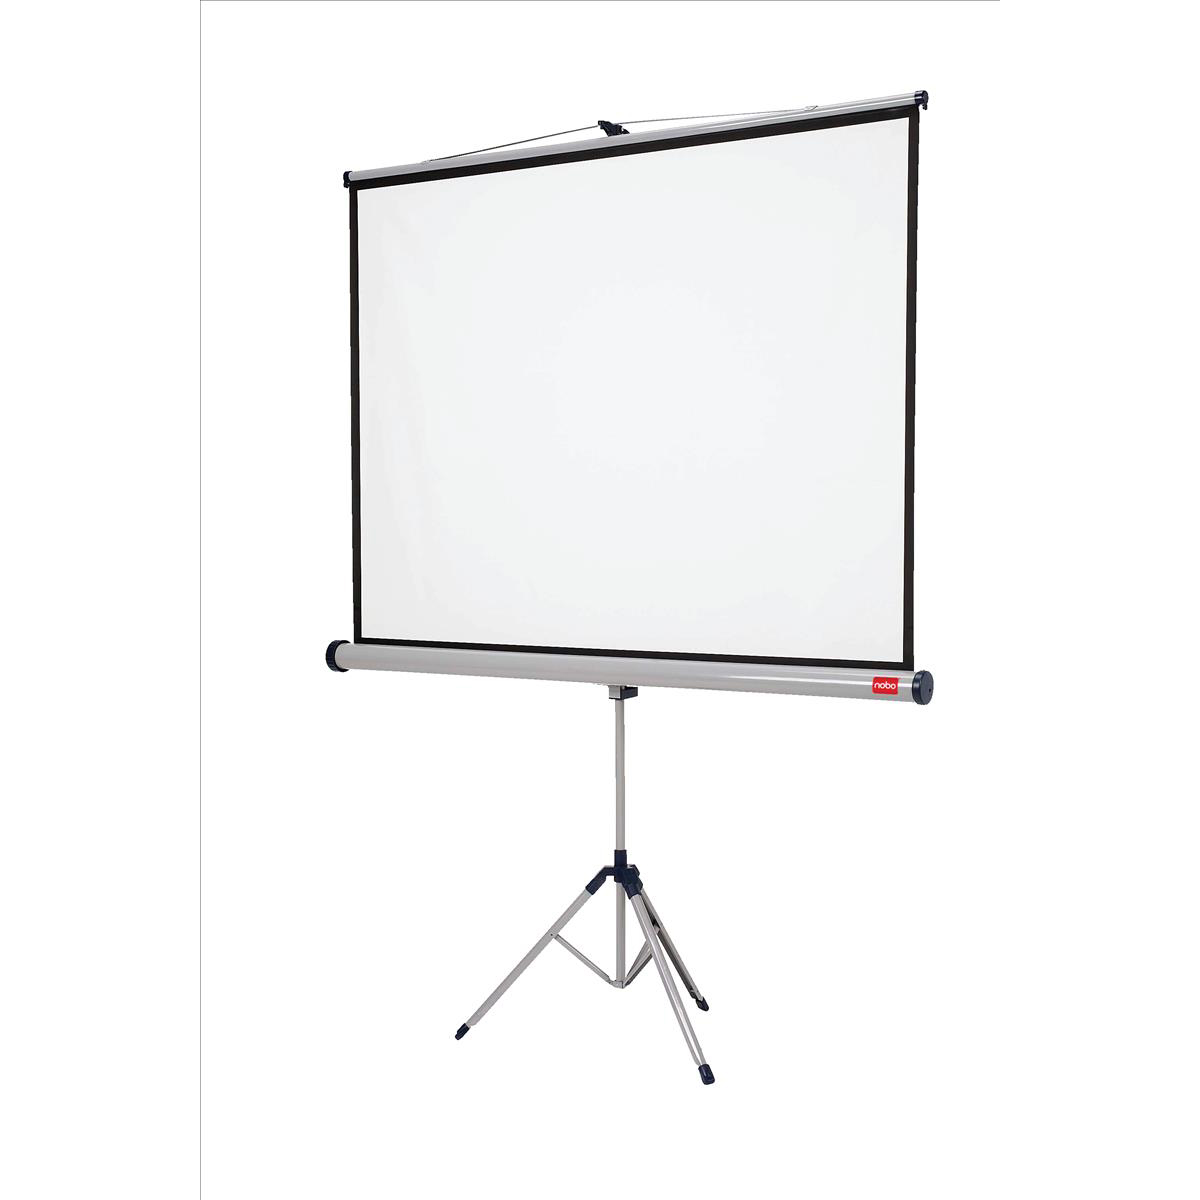 Screens Nobo Tripod Widescreen Projection Screen W1750xH1150 Ref 1902396W